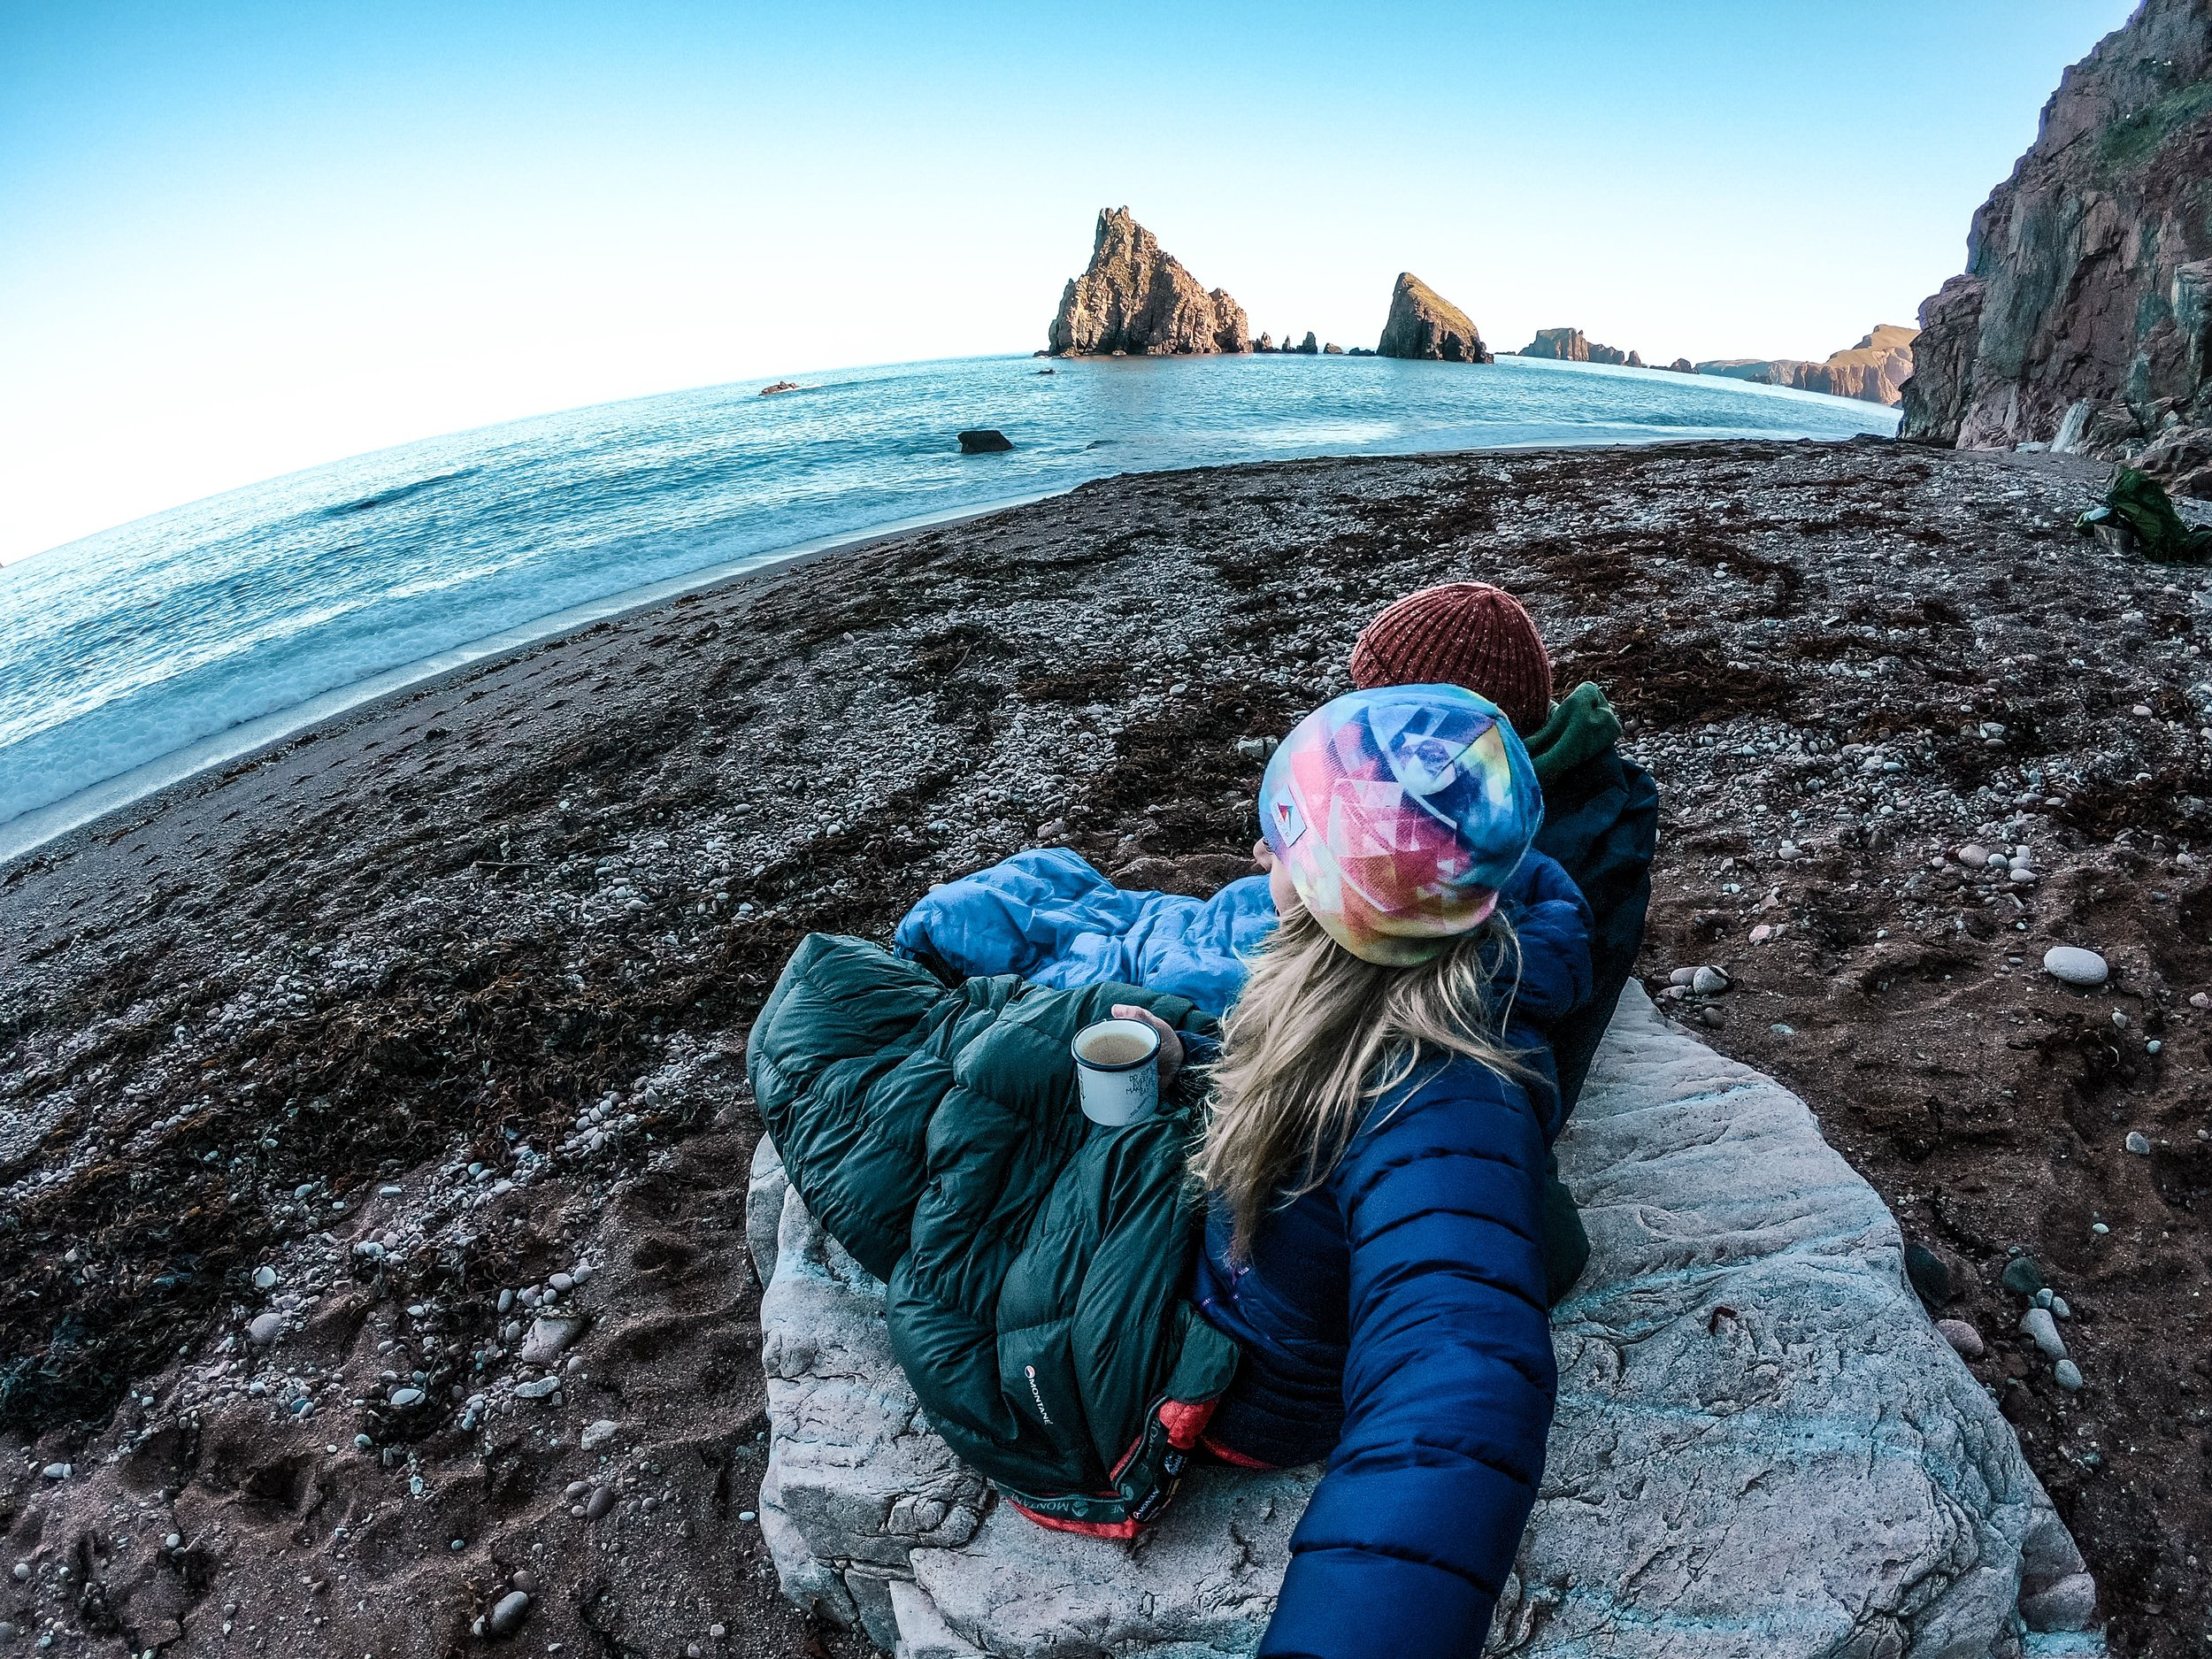 Our  Montane sleeping bags  are the bomb! (links below)